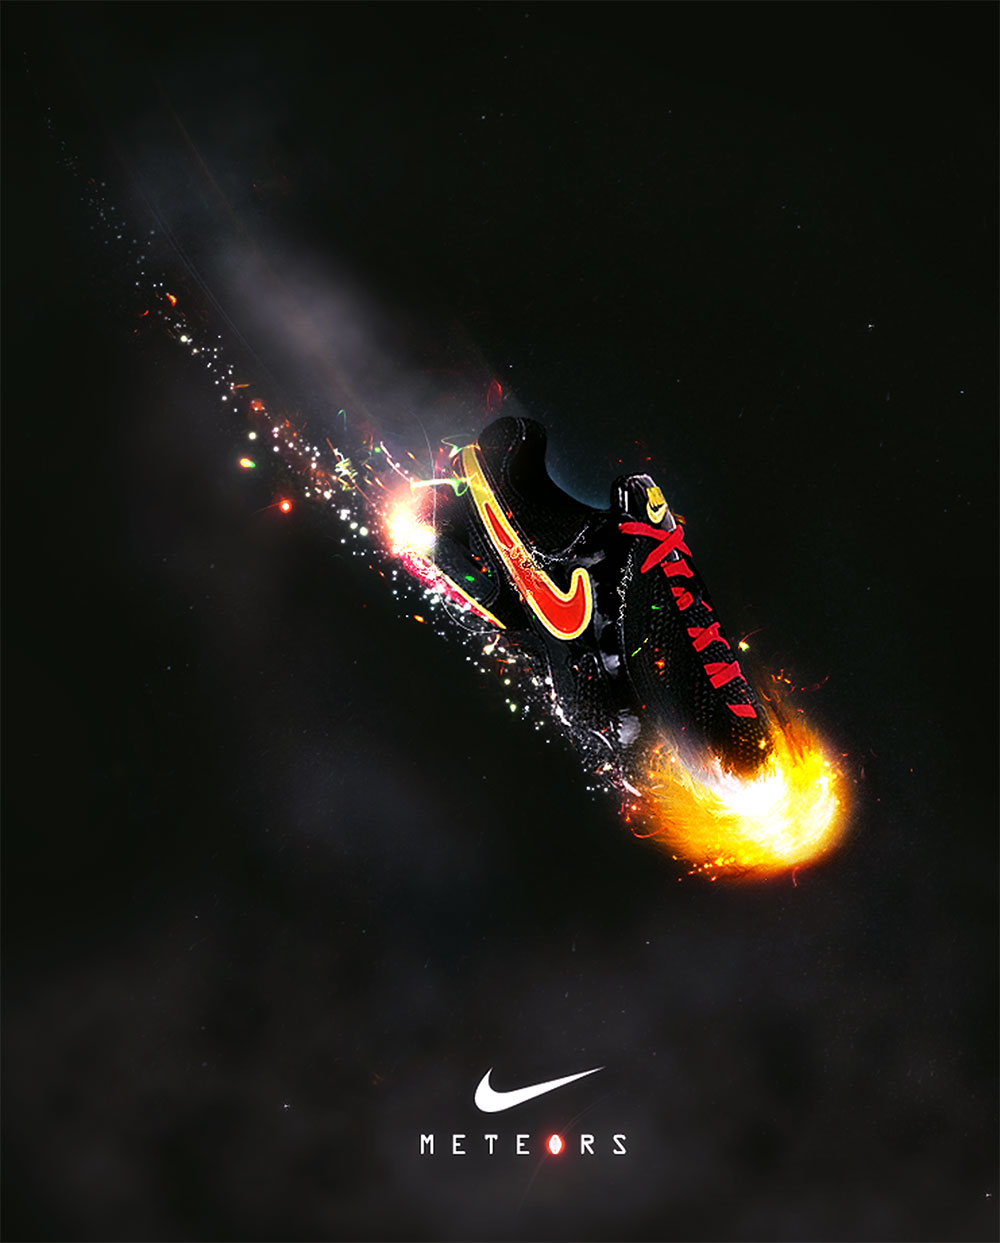 Nike Print Magazine Ads That Boosted The Brand's Popularity